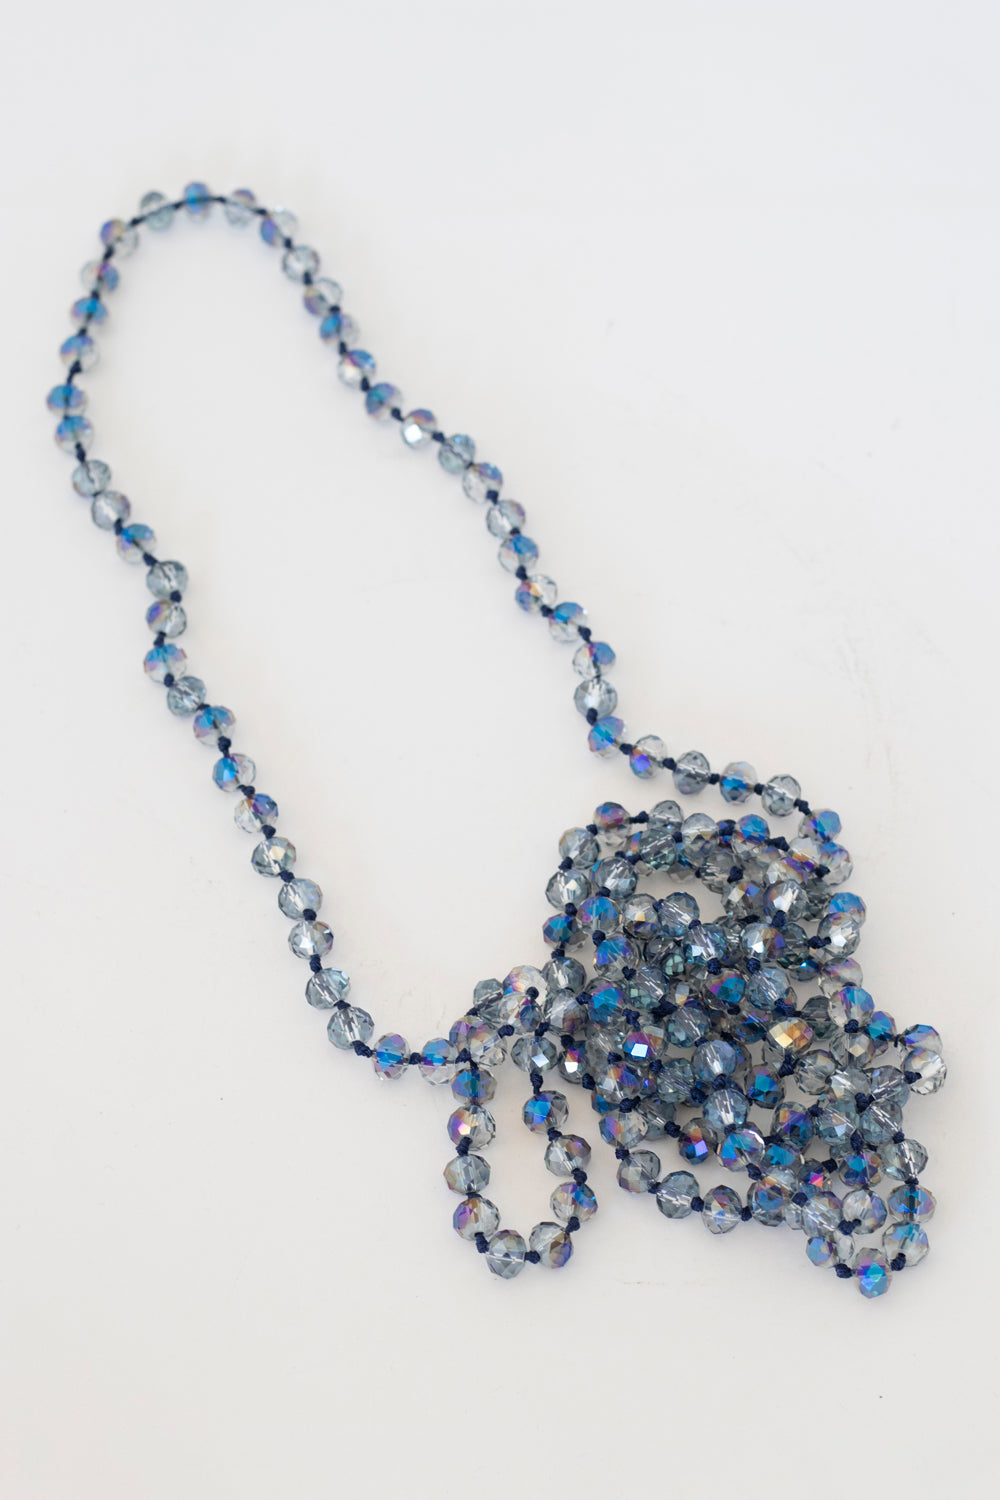 Glassy Eyed Necklace | New Zealand Fashion | Necklace | Annah Stretton